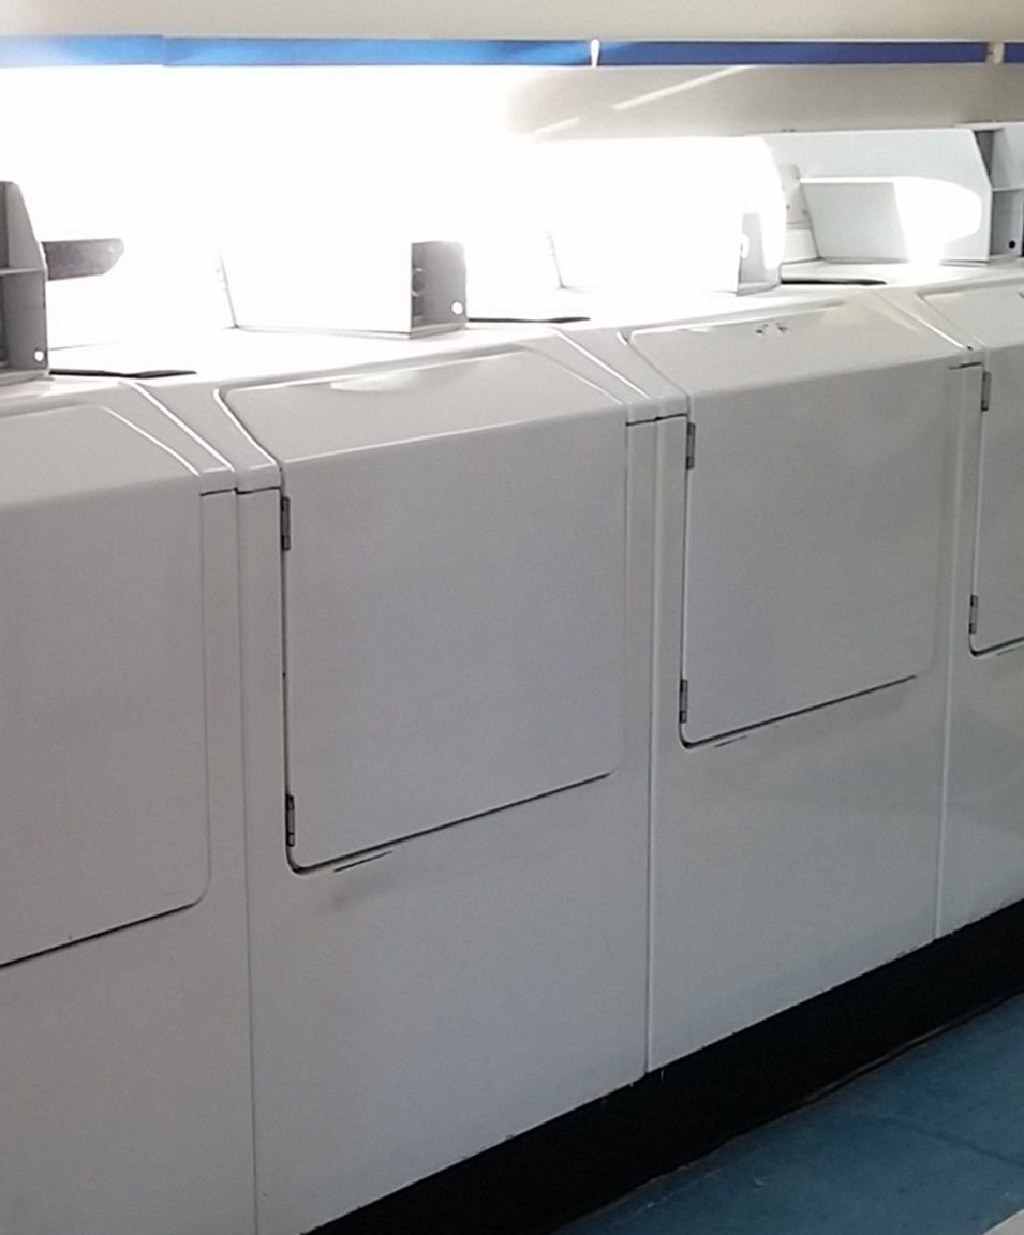 Coin Laundry Maytag Neptune Commercial Washing Machine Model MAH21PDAWW